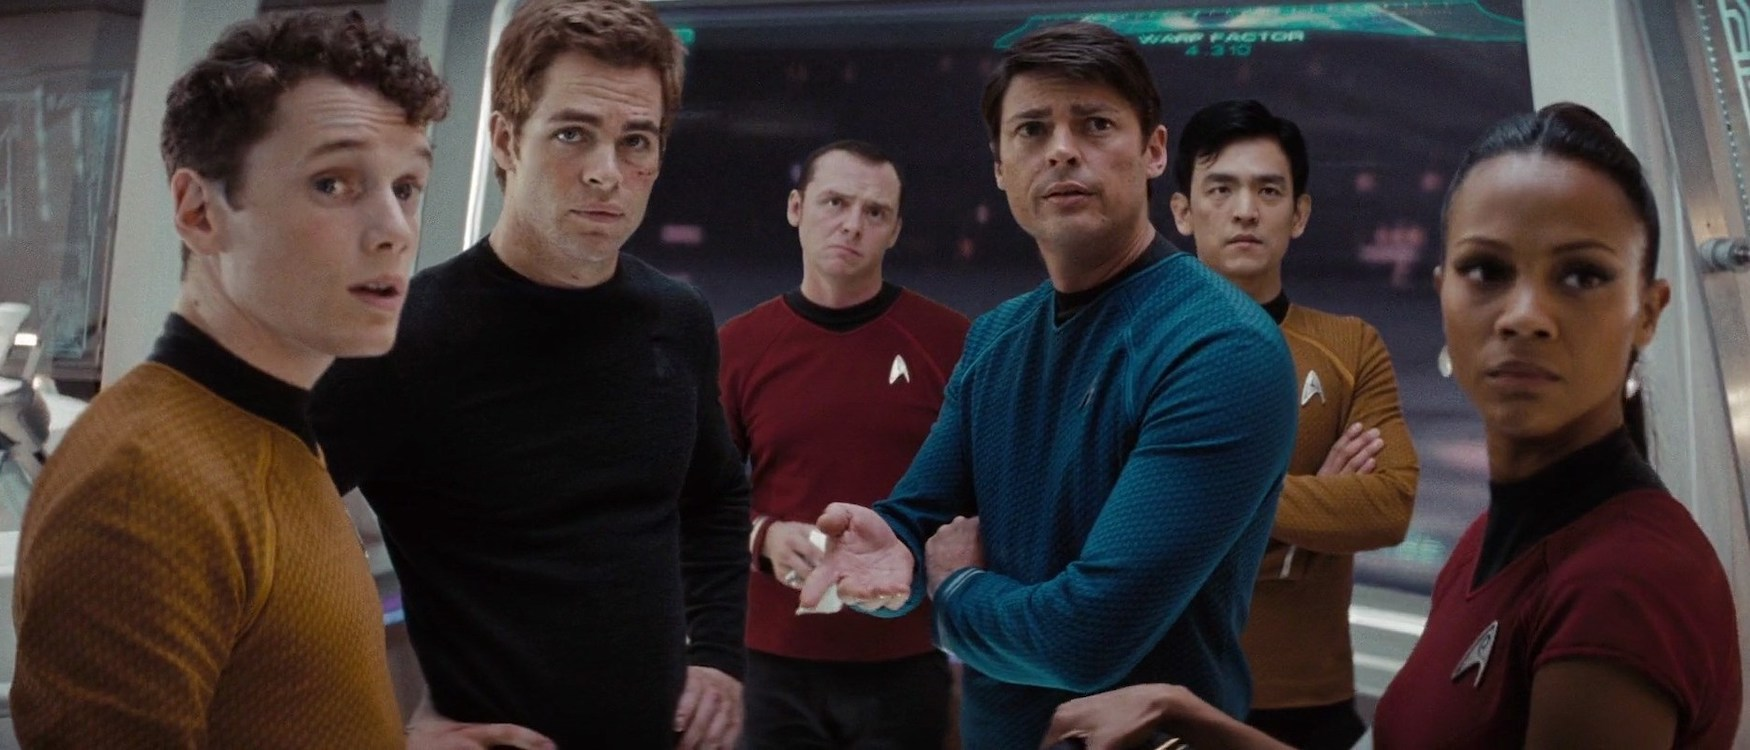 JJ Abrams' Star Trek Reboot Revisited 10 Years Later – /Film